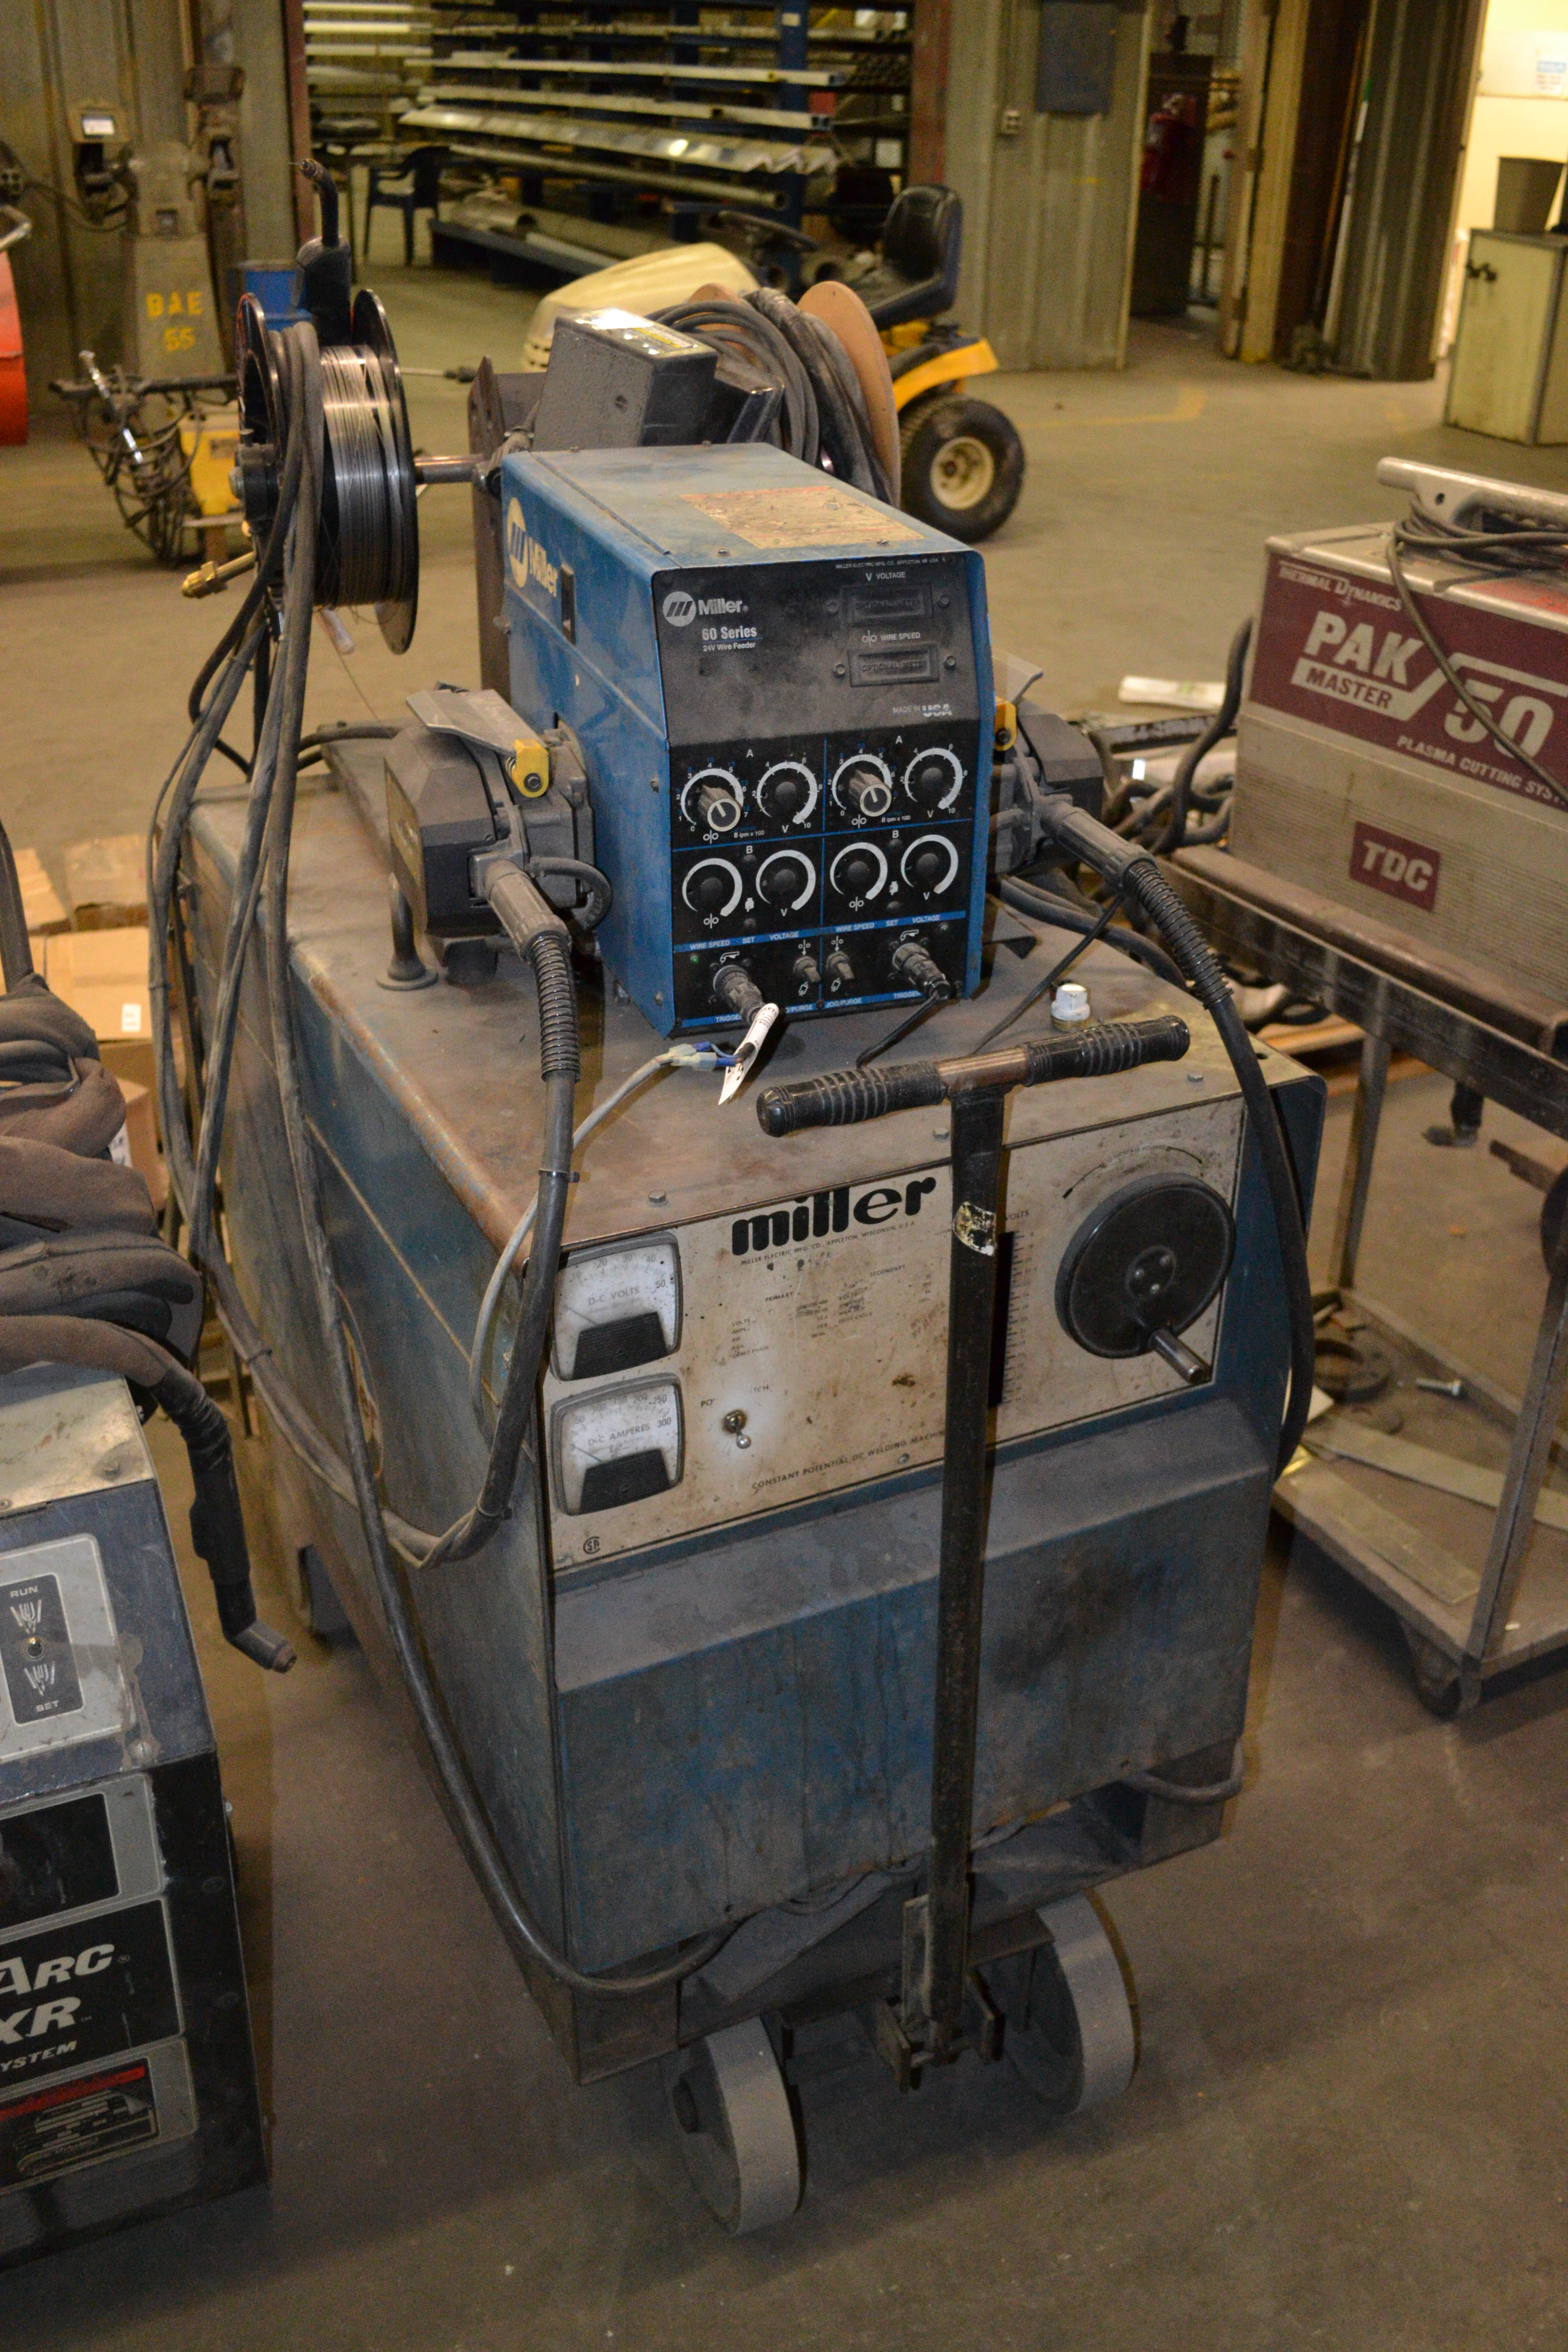 Lot 38 - Miller welder, model CP-250 TS with Miller 60 series 24 volt wire feeder  SN: HE791267